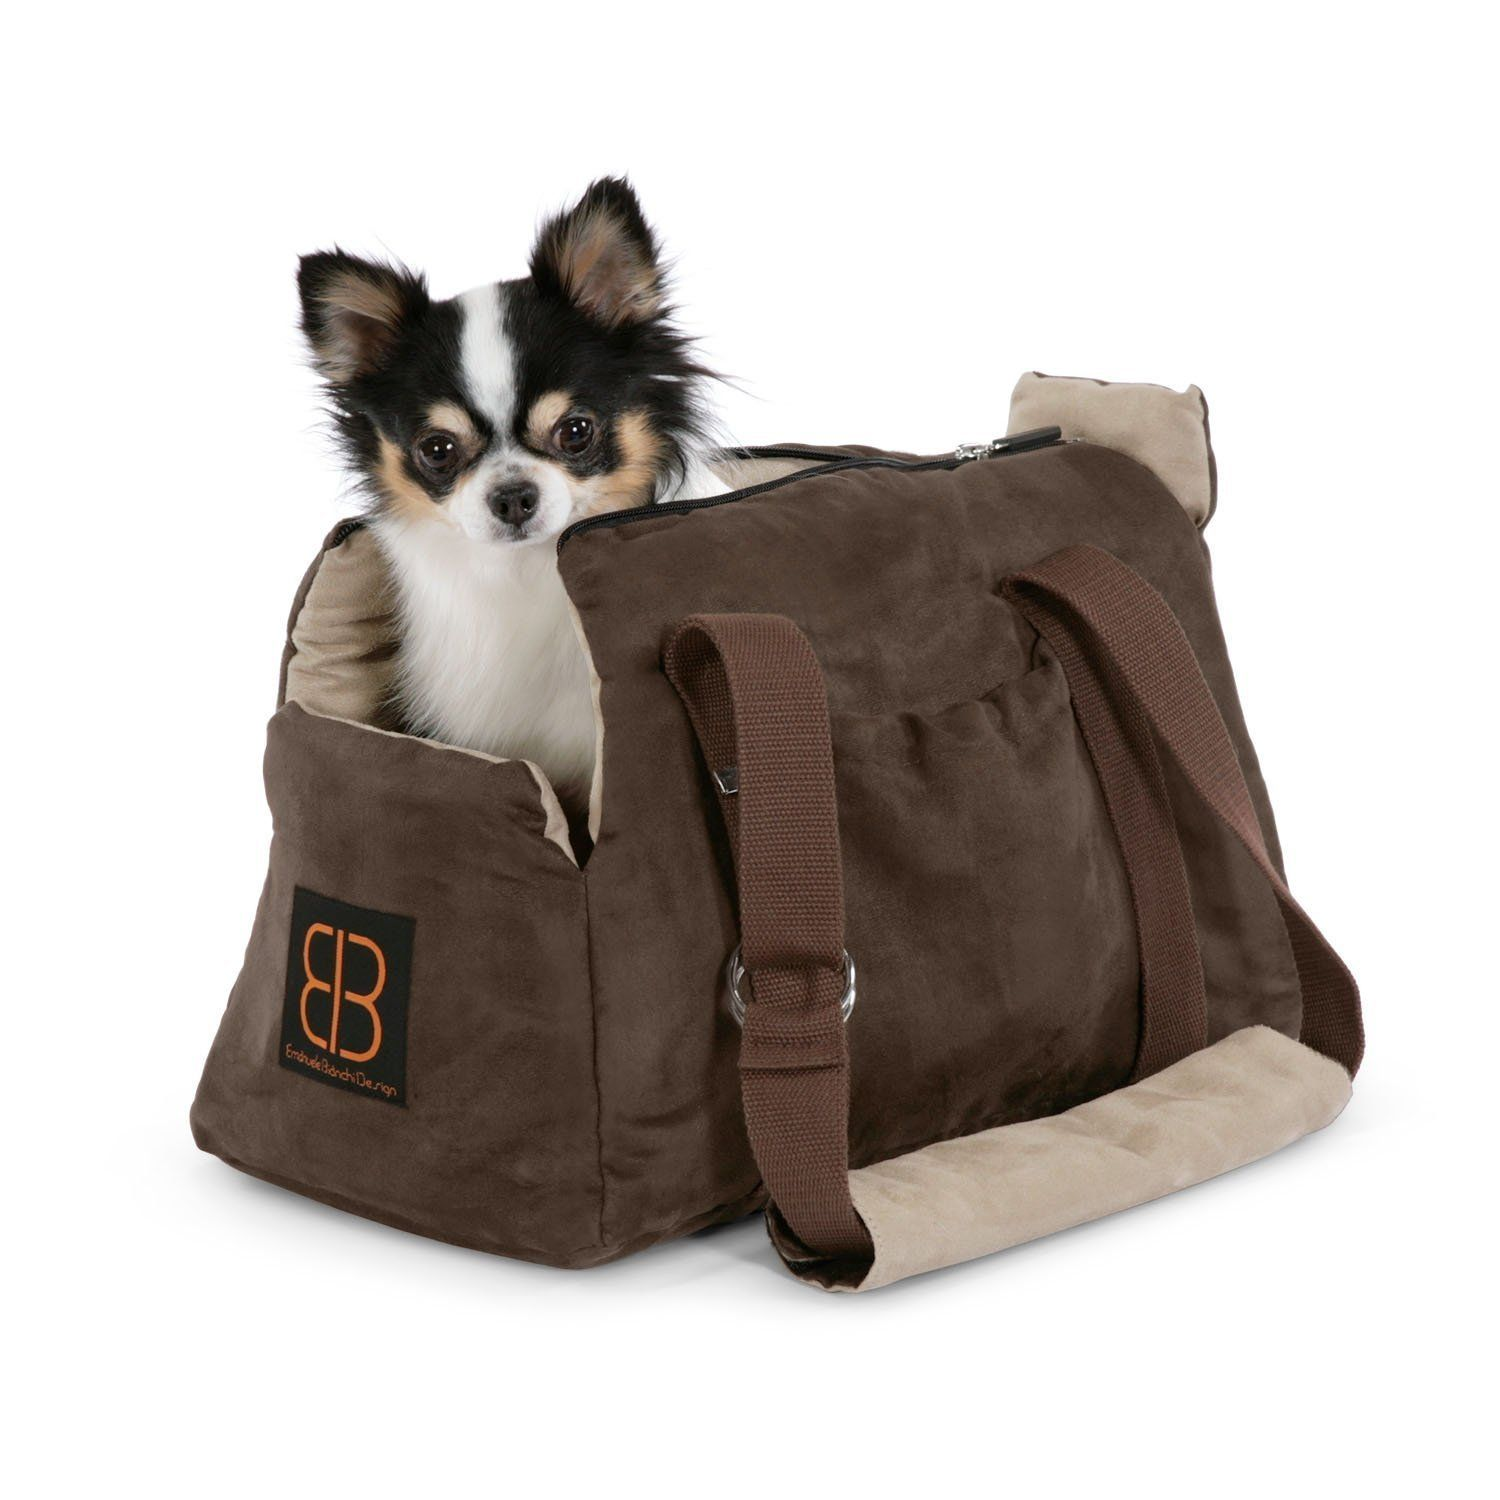 Pet Ego Velvet Bitty Bag Pet Carrier In Espresso Stone 16 L X 9 75 W X 10 75 H Small Read More Review Dog Carrier Bag Small Dog Carrier Pet Carrier Bag